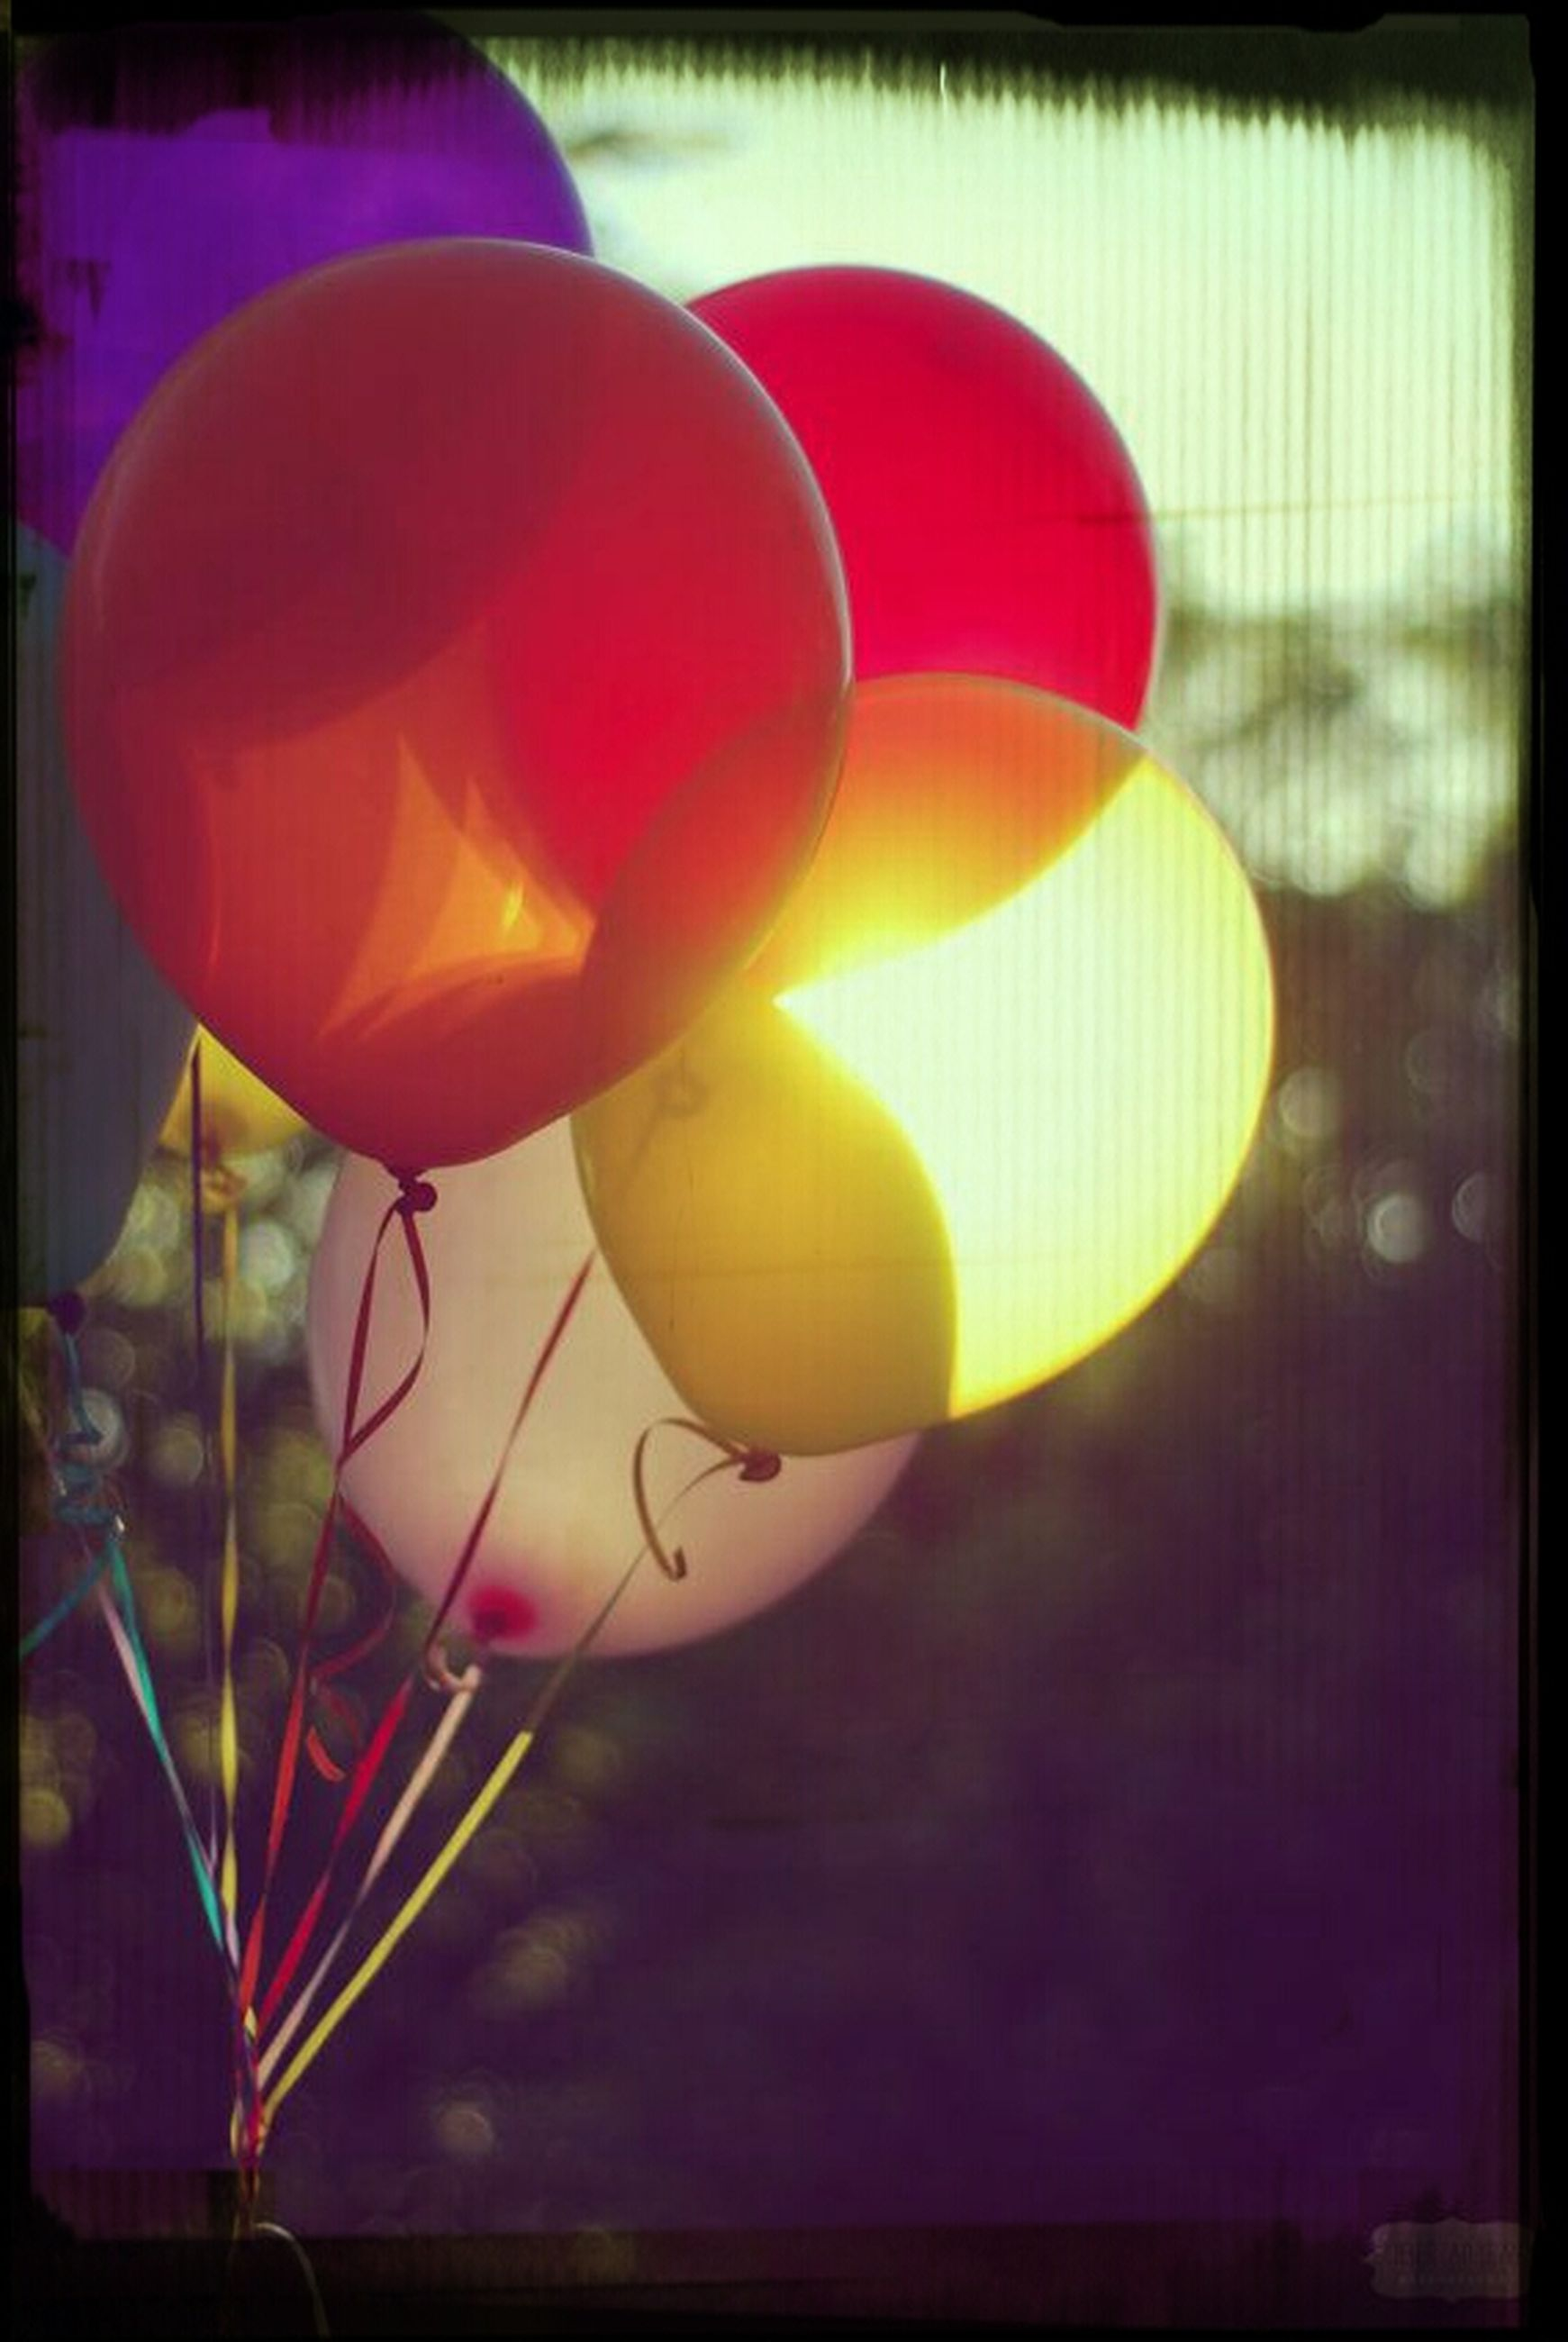 transfer print, auto post production filter, multi colored, indoors, hanging, close-up, decoration, balloon, red, no people, celebration, colorful, lighting equipment, still life, illuminated, yellow, focus on foreground, creativity, art, art and craft